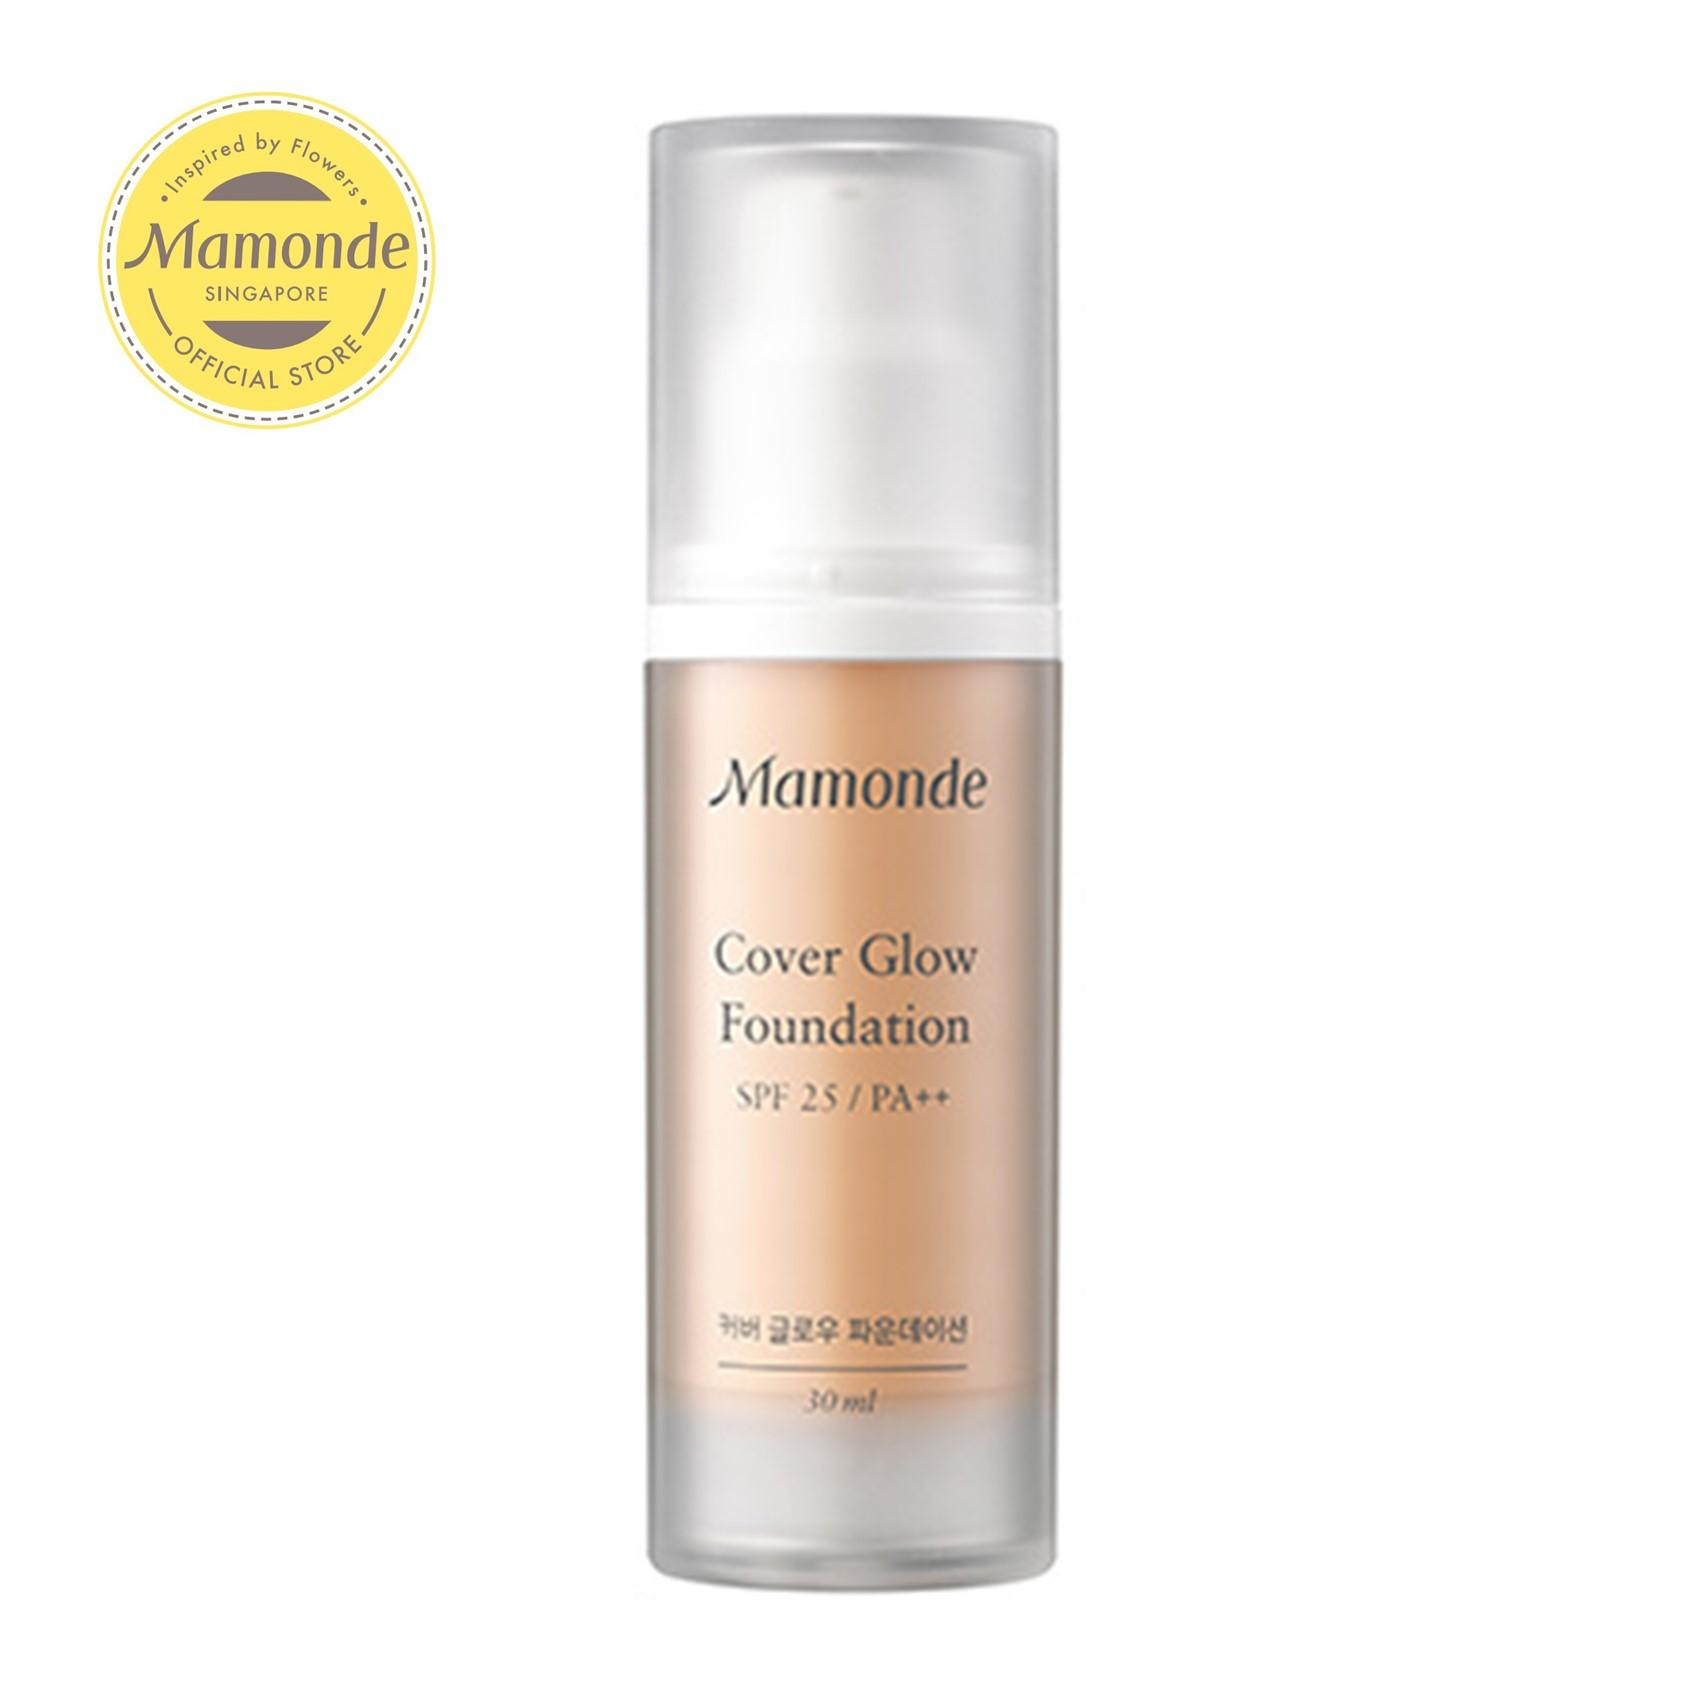 [flash Sales] Mamonde Cover Glow Foundation [3 Shades Available, Choose From Options] 30ml By Mamonde (capitaland Merchant).